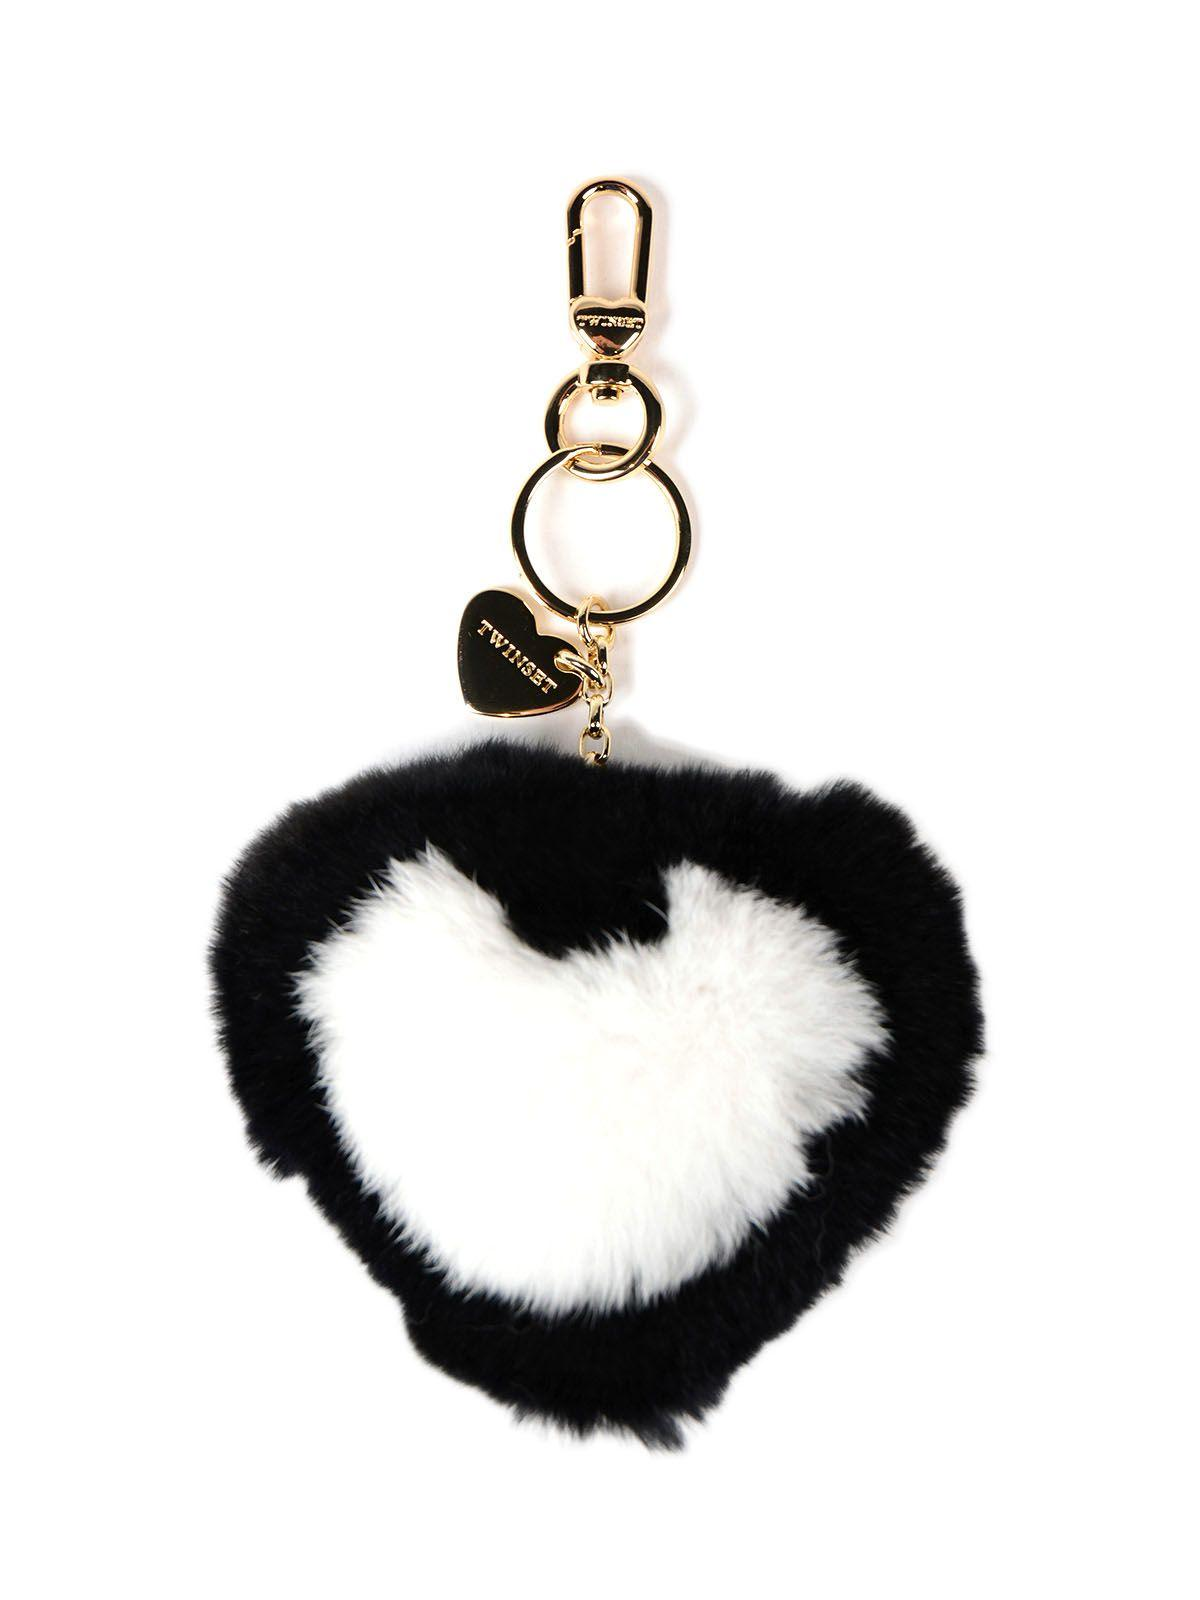 Twinset Heart Charm Keyring In Multicolour